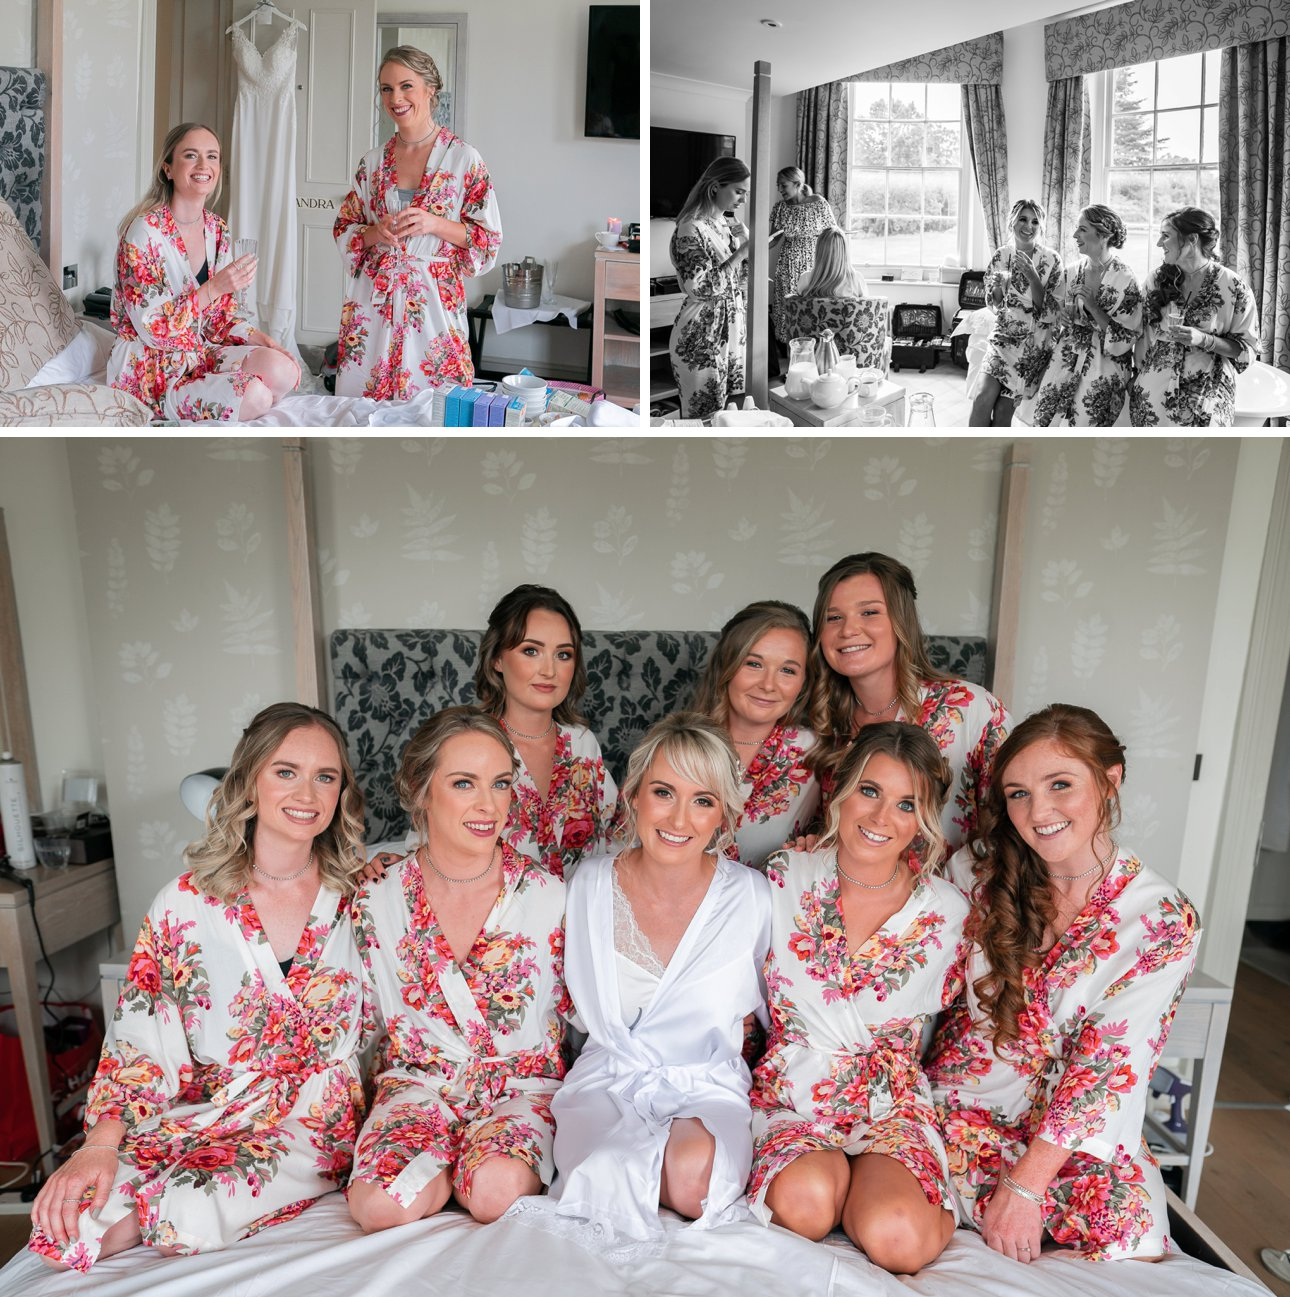 Bridesmaids getting ready in matching robes at Stoke Place Slough.